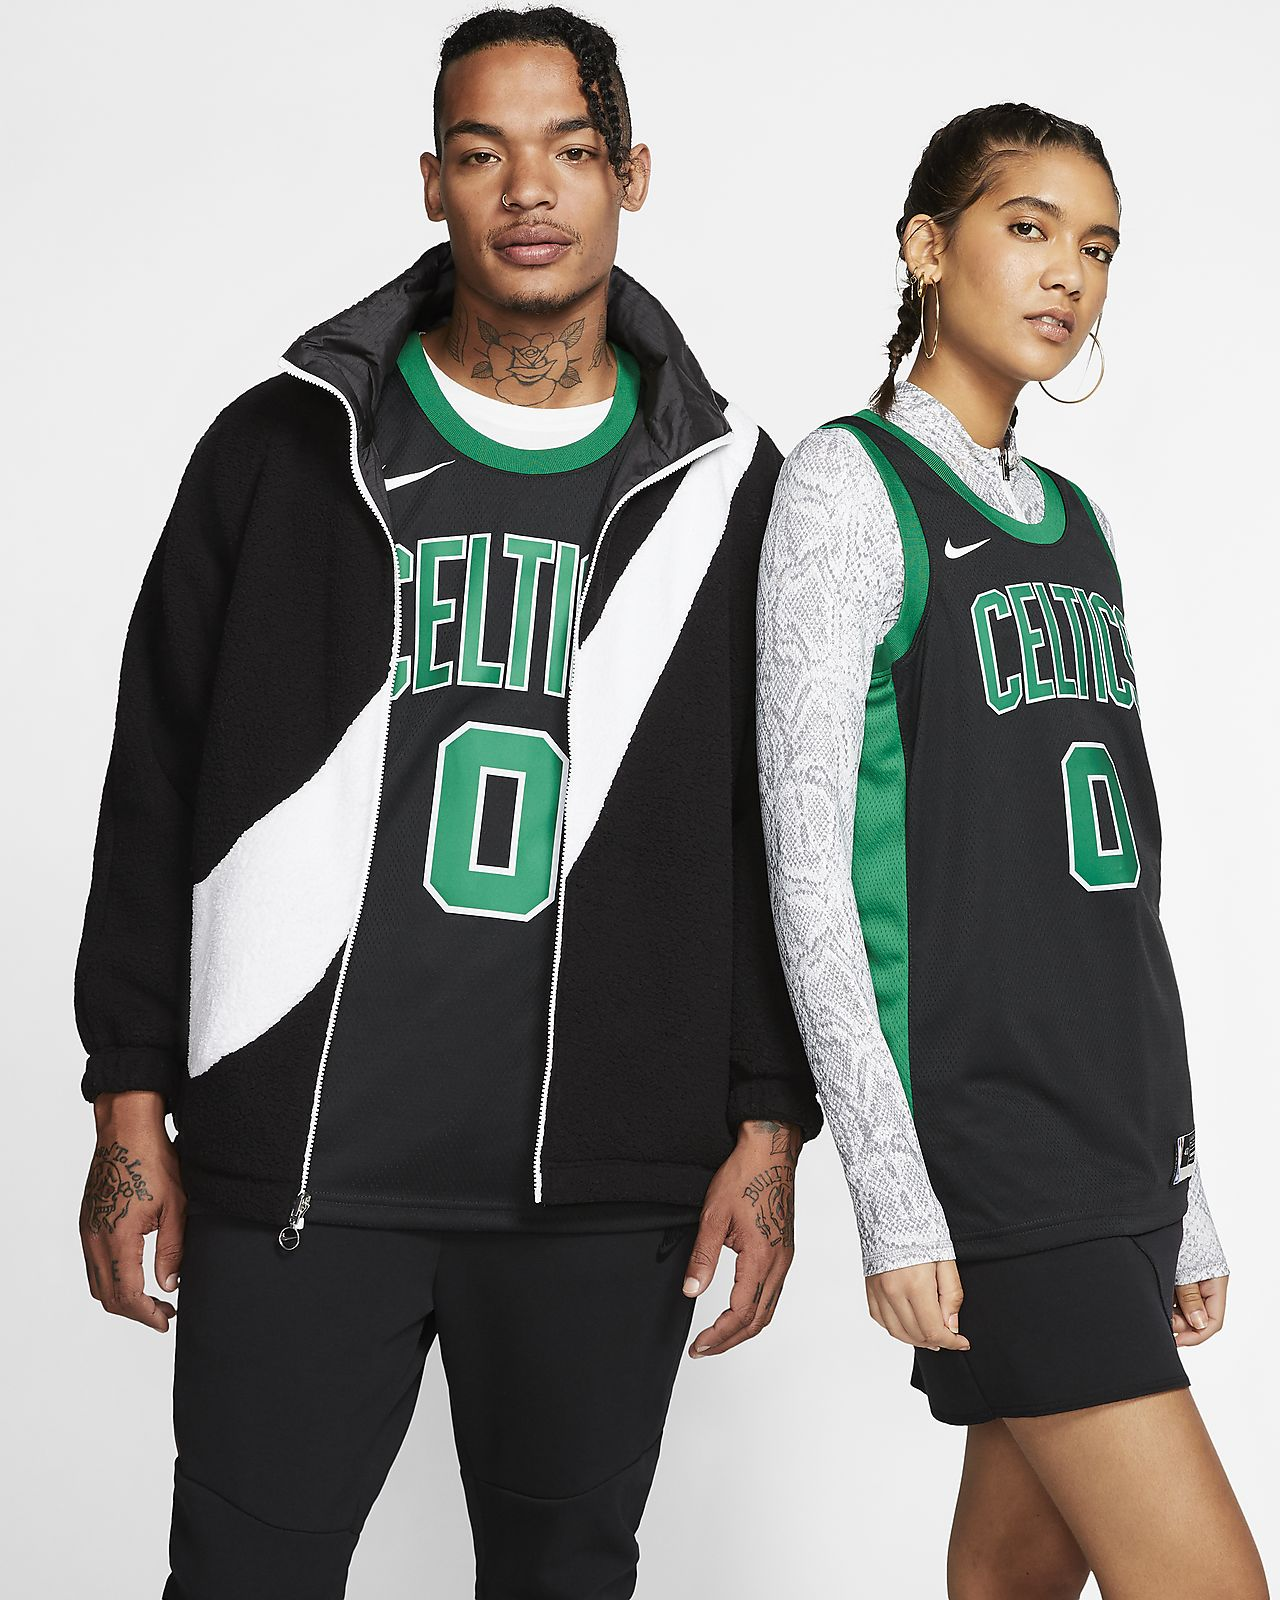 Men s Nike NBA Connected Jersey. Jayson Tatum Statement Edition Swingman (Boston  Celtics) 1c5cfb599